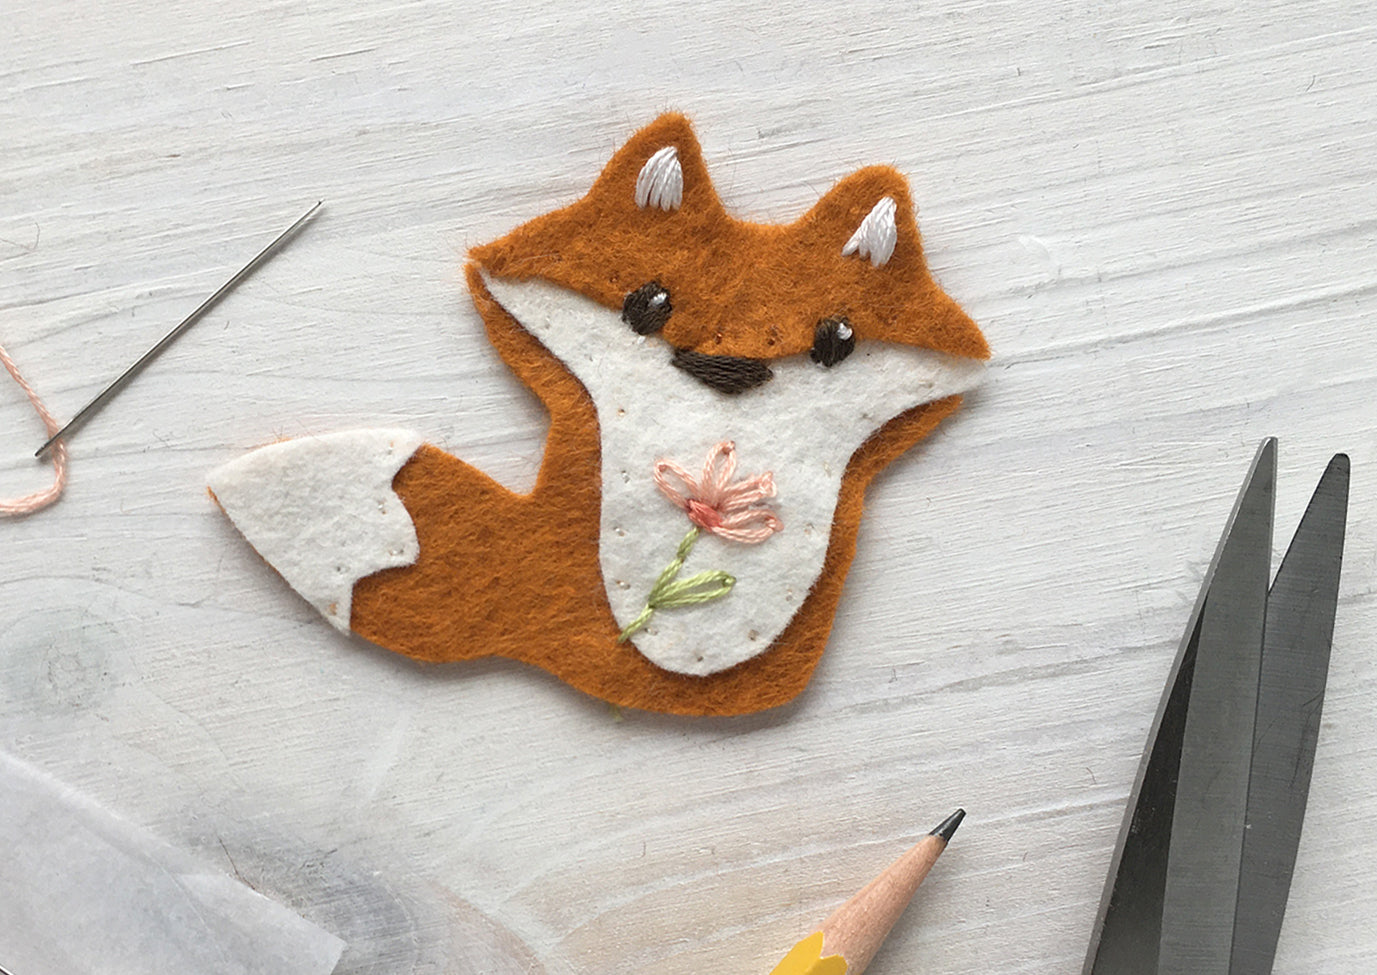 Finished embroidered felt fox